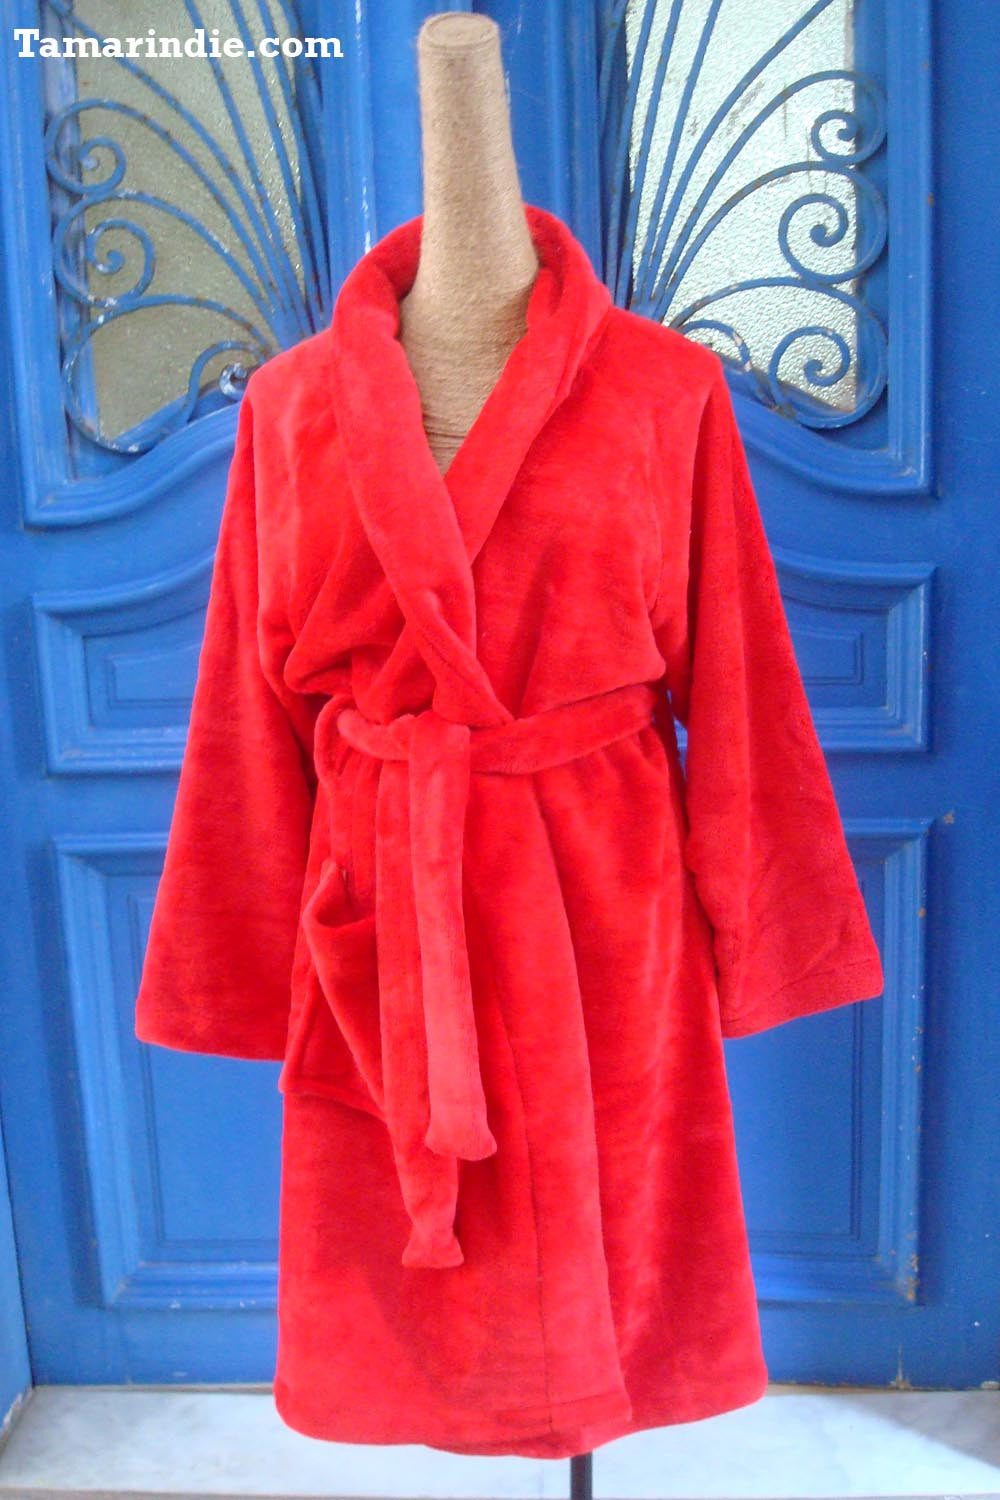 Red Winter Robe|روب للشتاء احمر